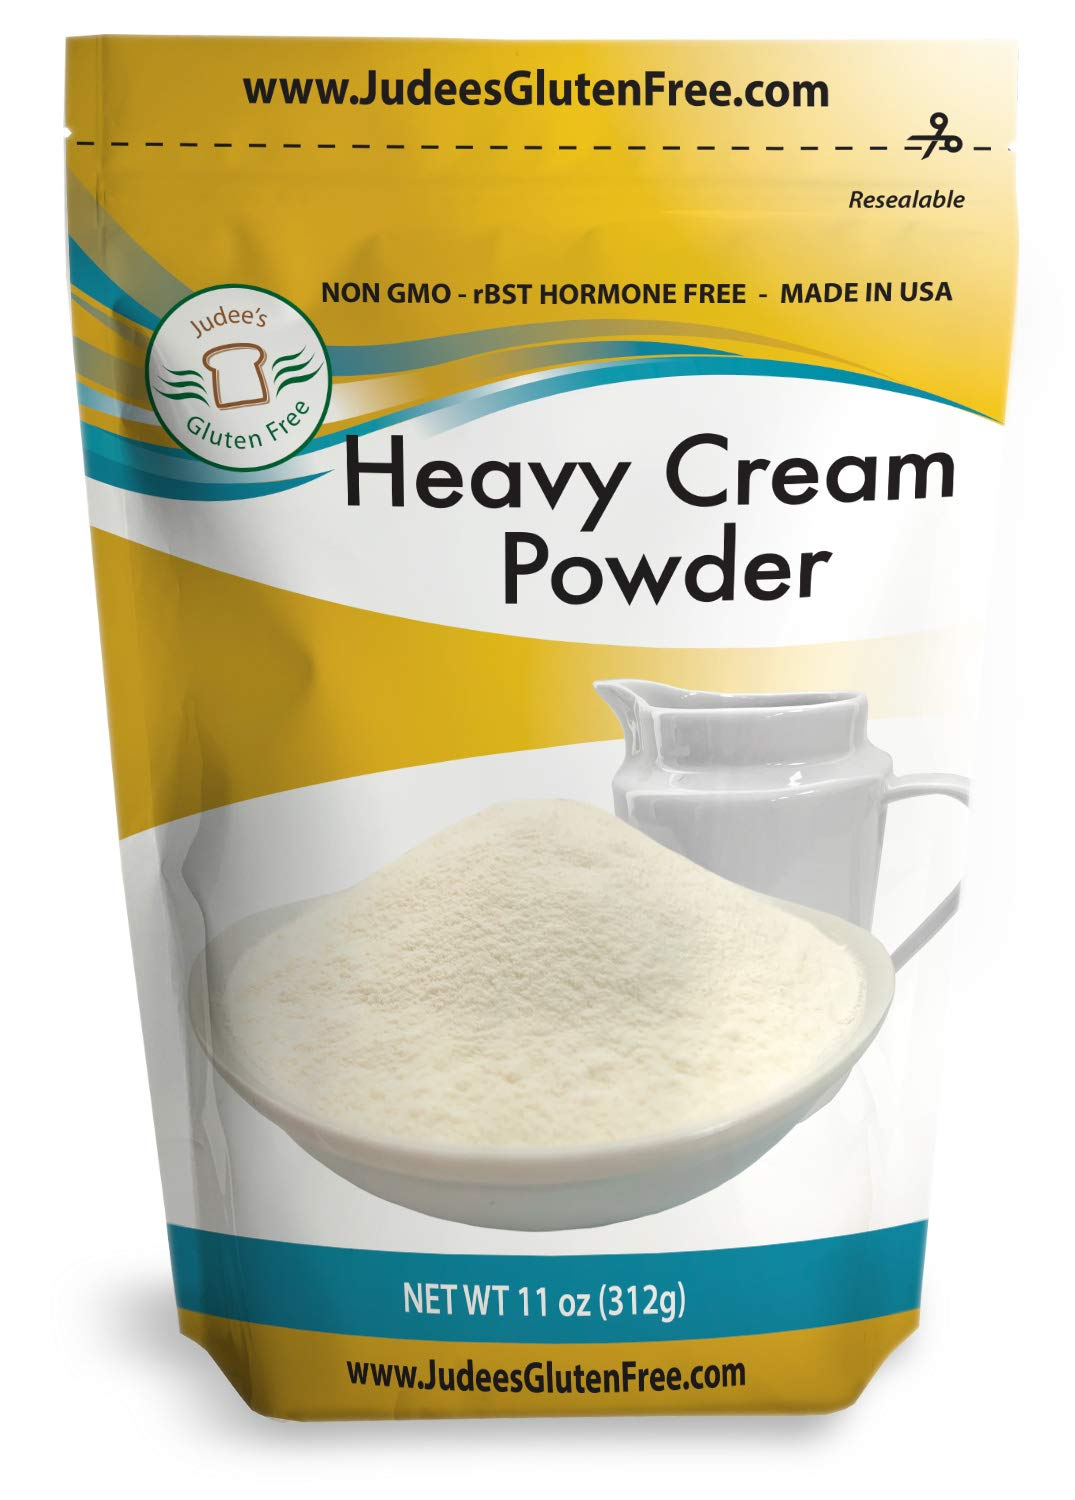 Judee's Heavy Cream Powder(11 oz): GMO and Preservative Free: Produced in the USA: Keto Friendly, Add Healthy Fat to Coffee, (24 oz also) Freshness Locked in Package